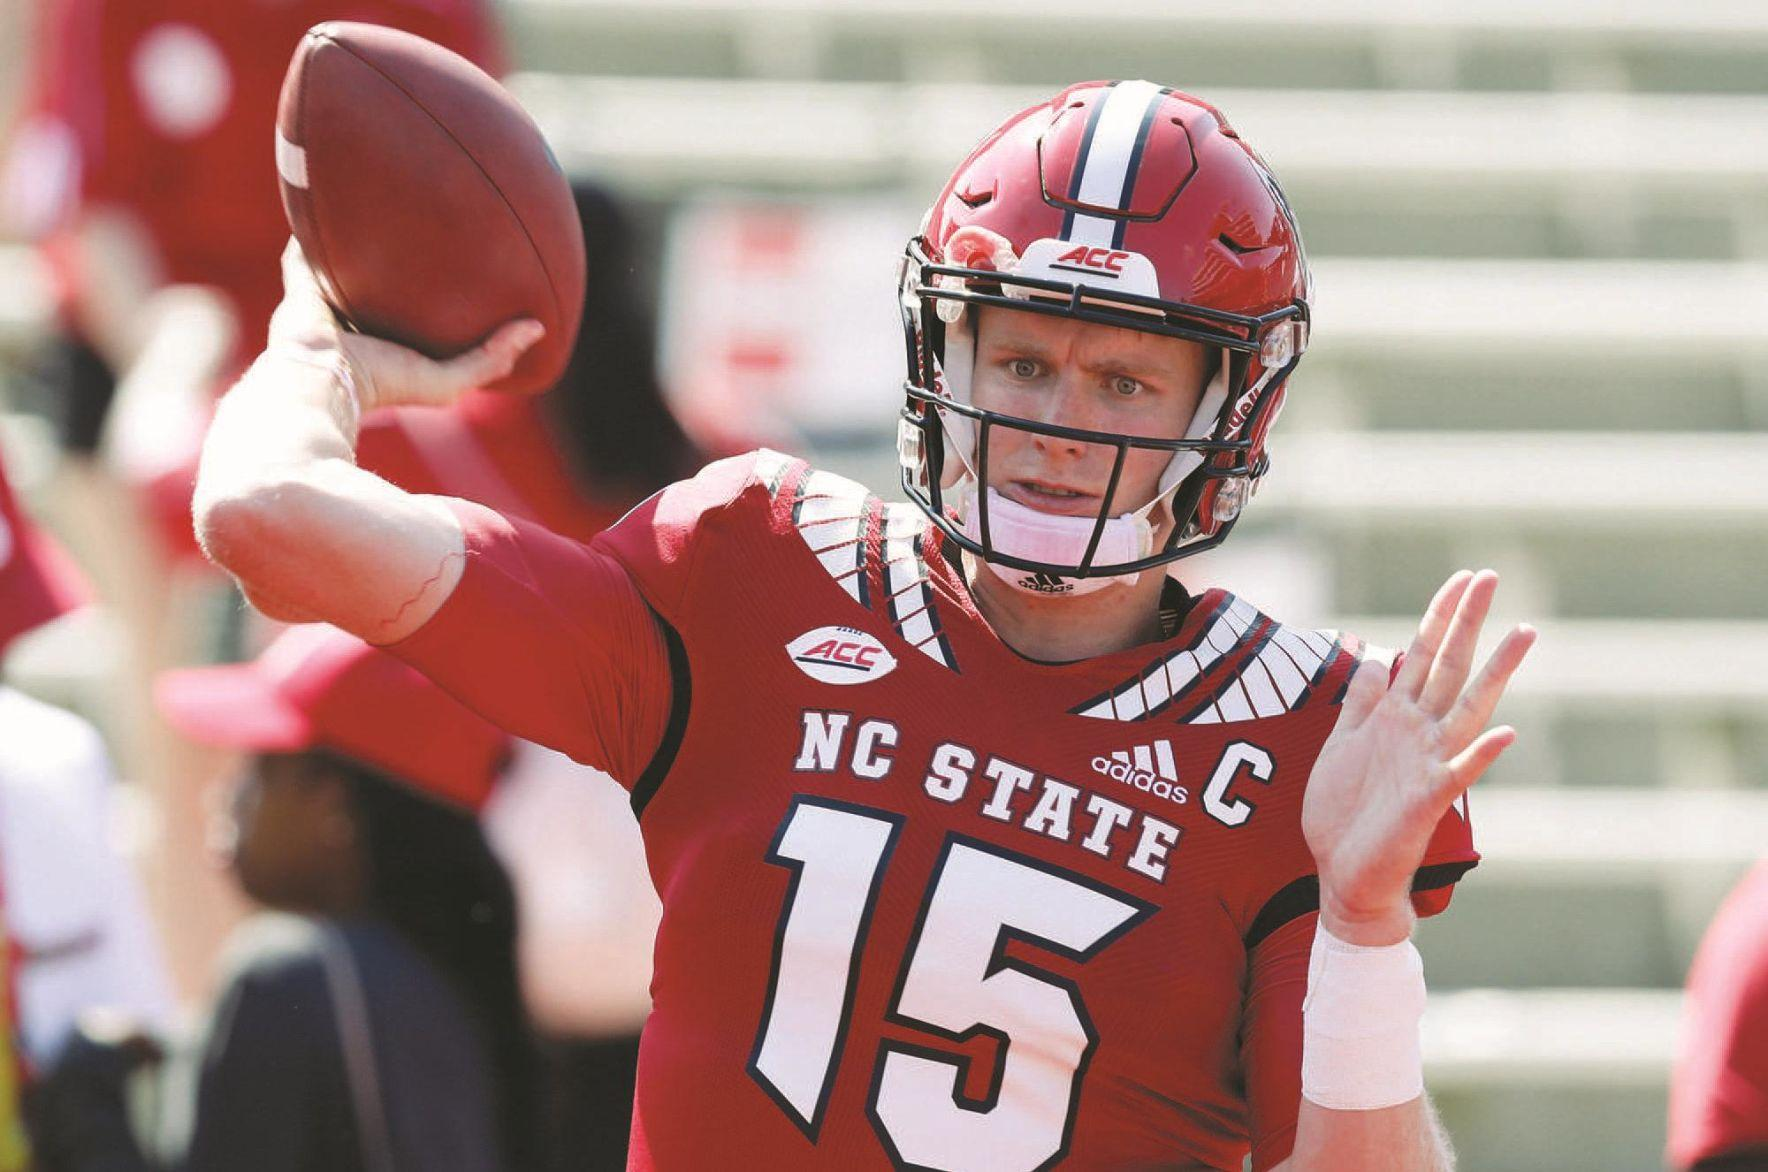 online retailer 61cfc fba98 NC State's Ryan Finley a special student-athlete | | herald ...